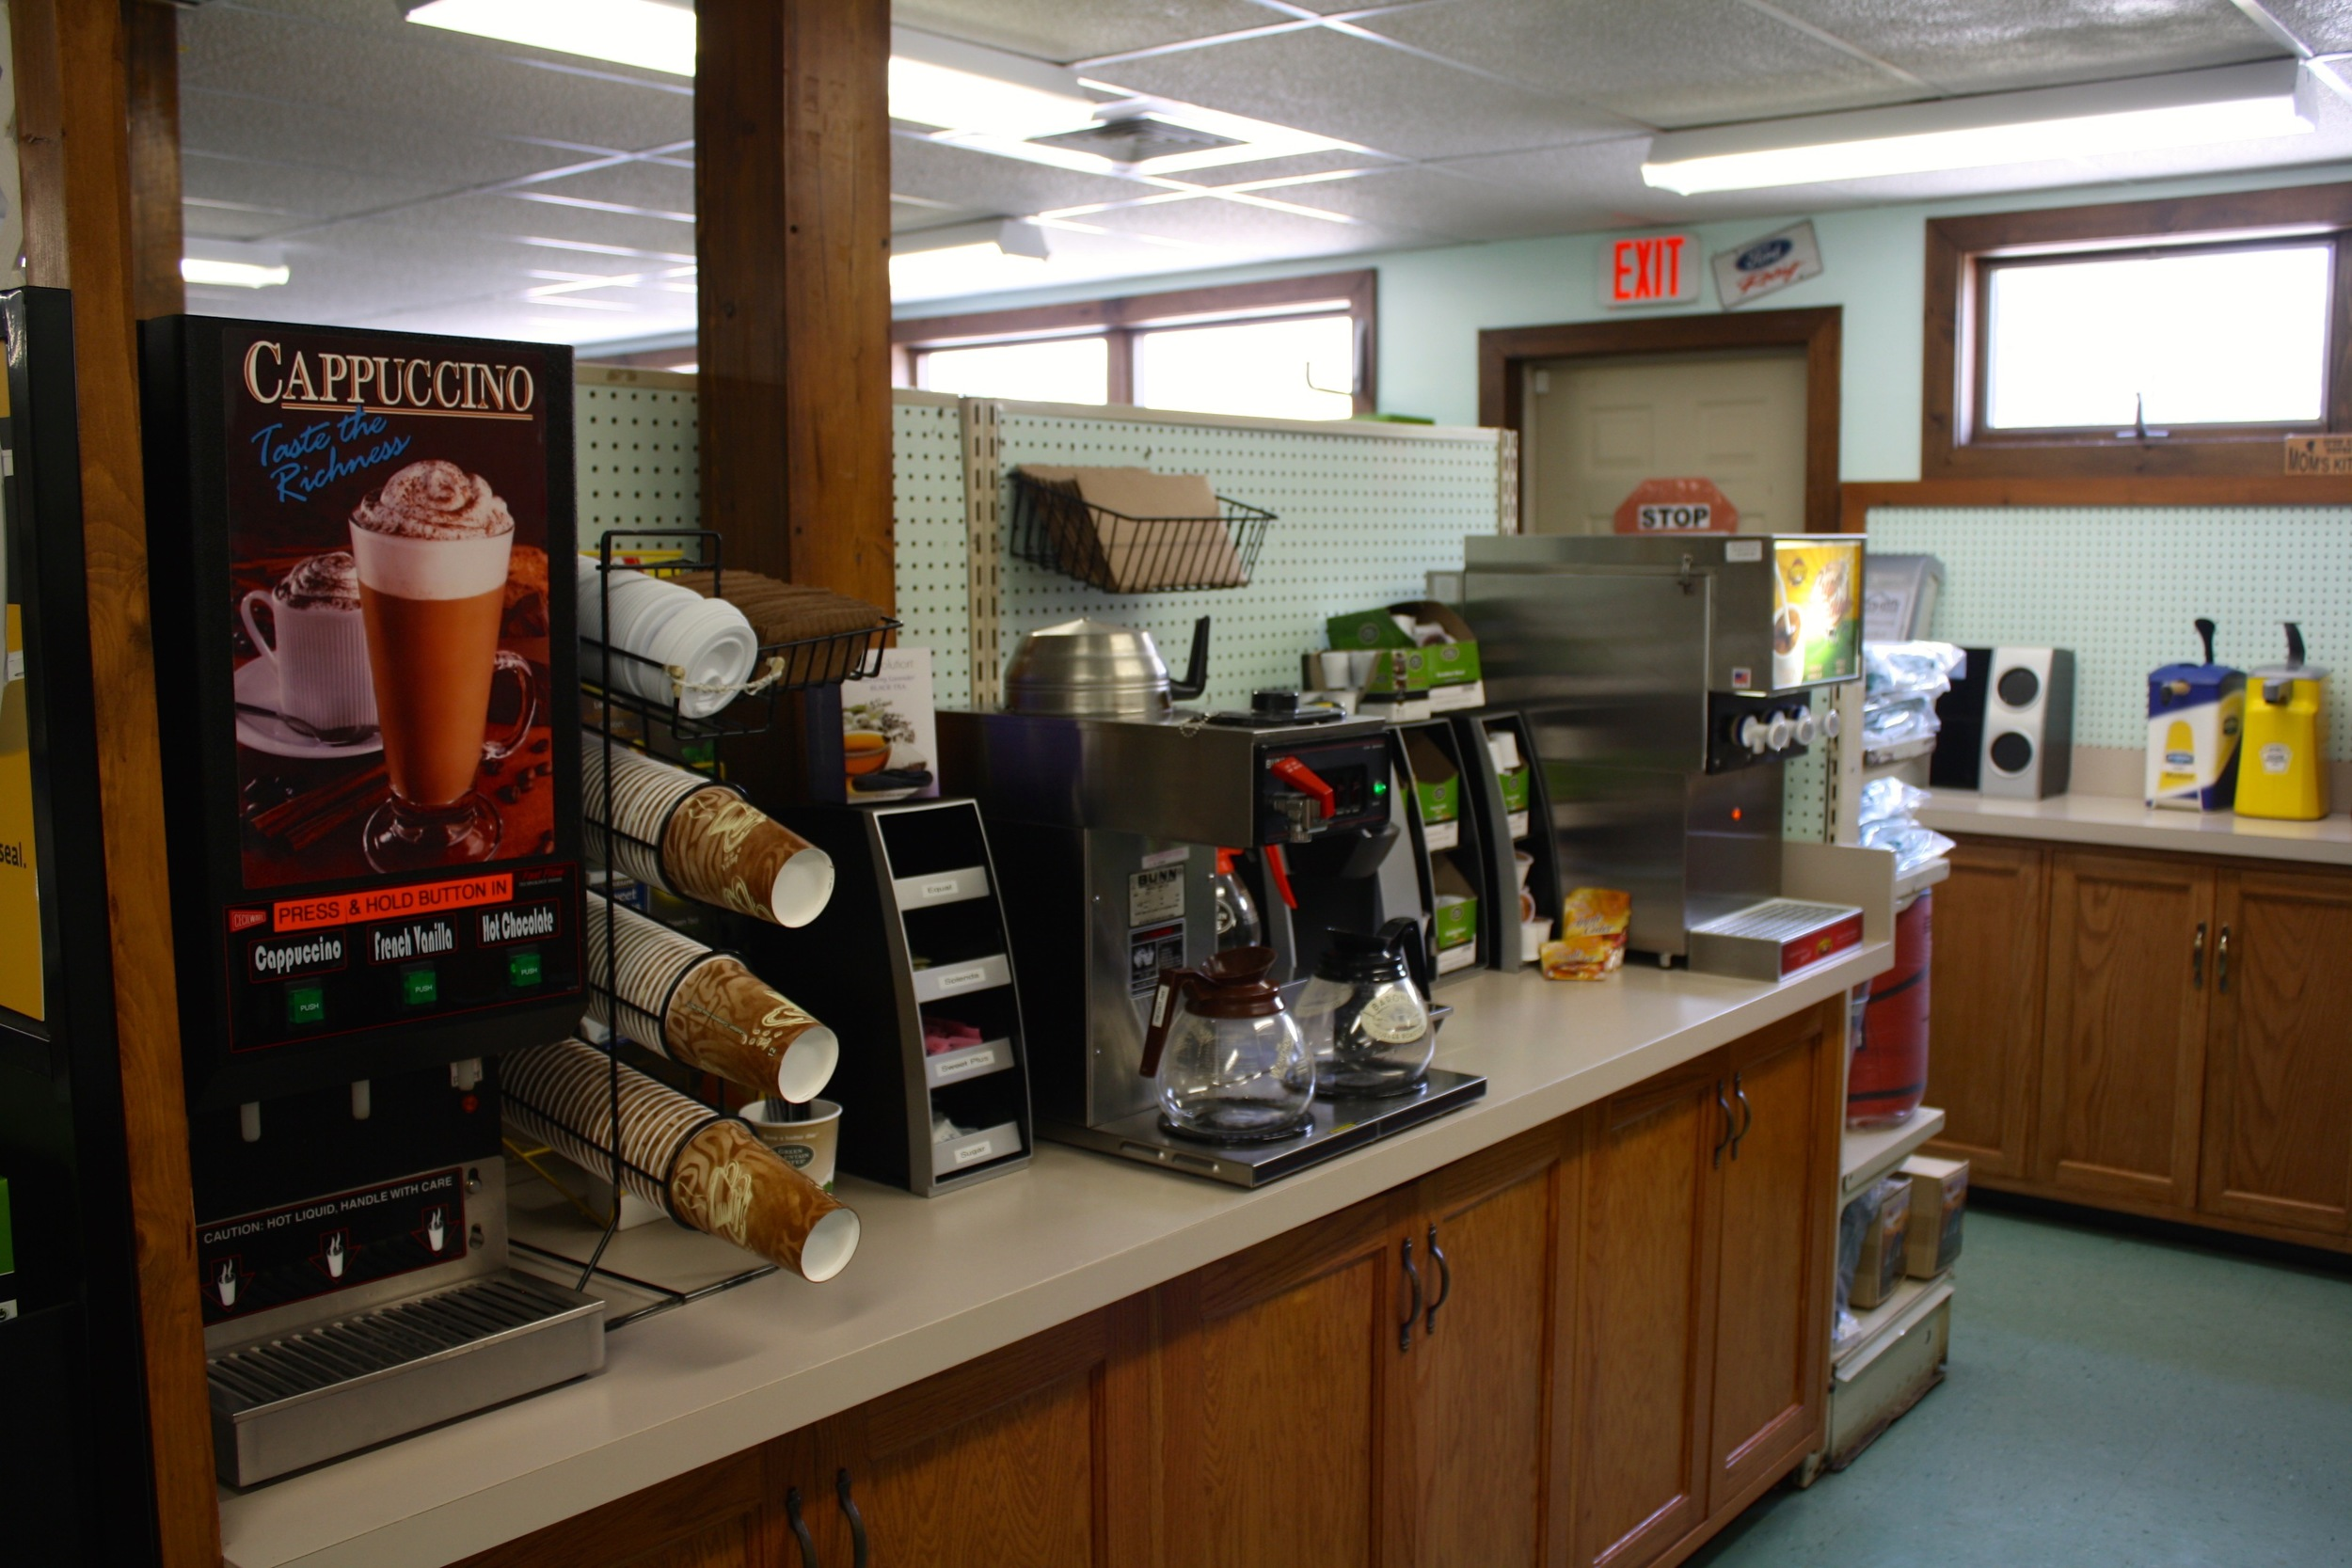 coffee and breakfast items available